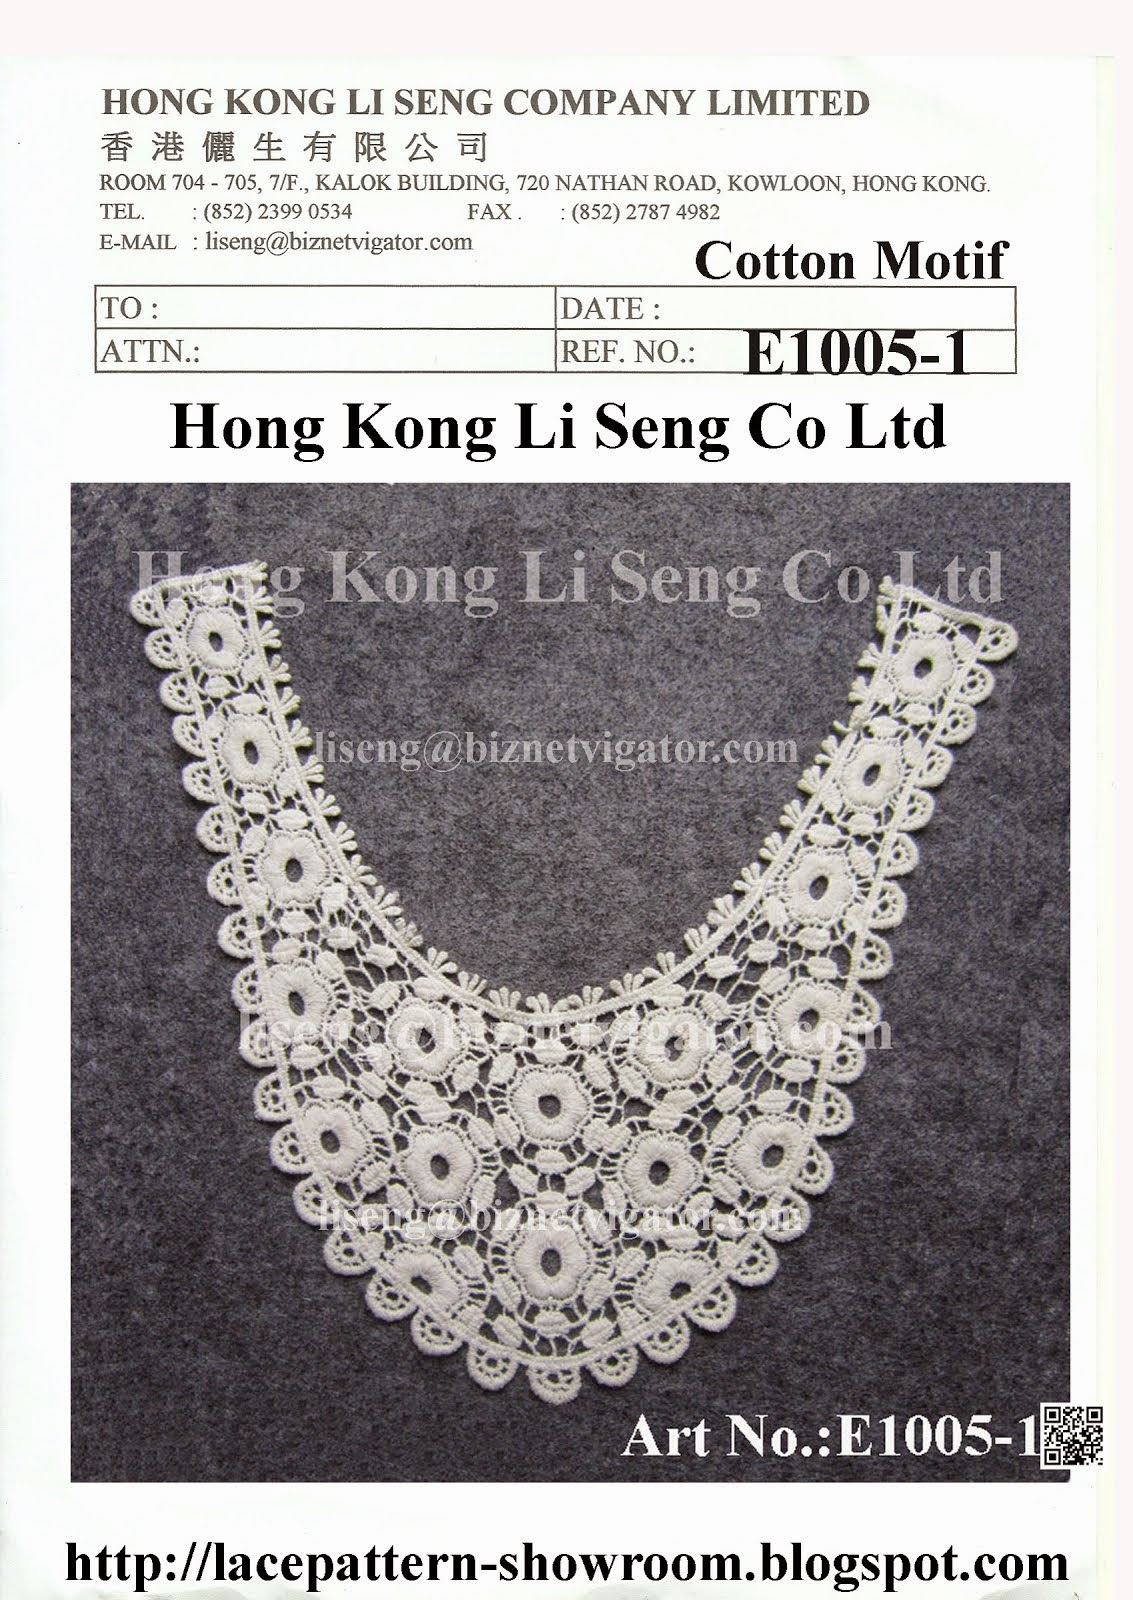 New Embroidered Cotton Lace Motif Manufacturer Wholesale and Supplier - Hong Kong Li Seng Co Ltd